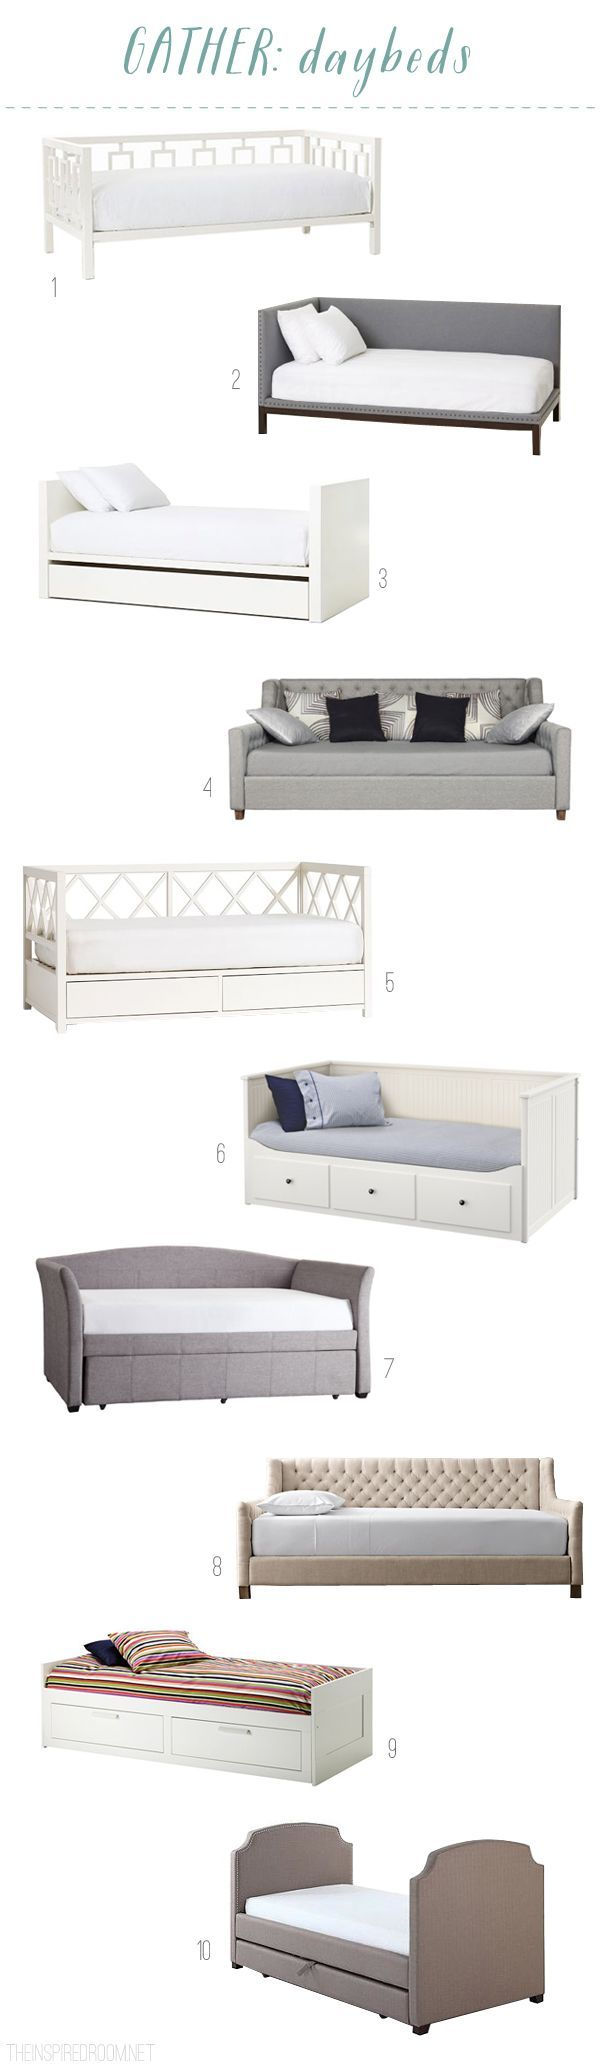 Daybed Round Up - The Inspired Room blog: